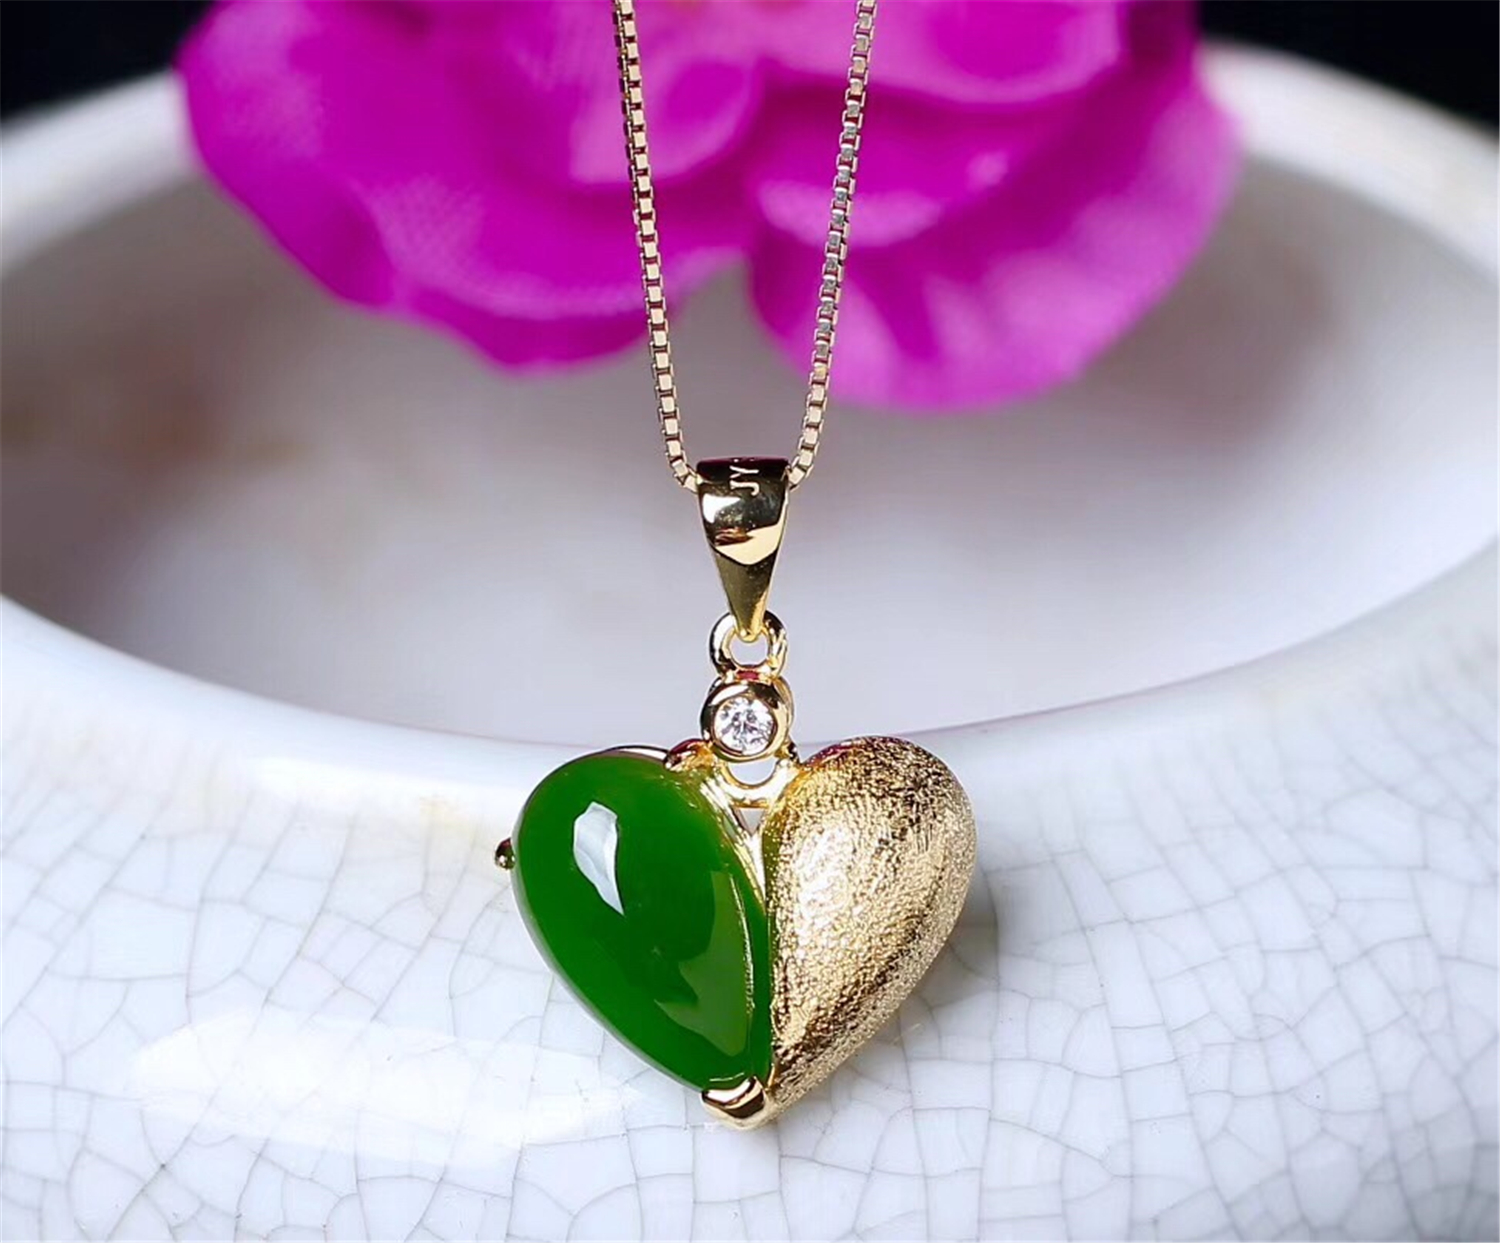 New S925 With Certificate Sterling Silver Natural Chinese Hetian Green Jade Women Heart Pendant Valentines Day GiftNew S925 With Certificate Sterling Silver Natural Chinese Hetian Green Jade Women Heart Pendant Valentines Day Gift